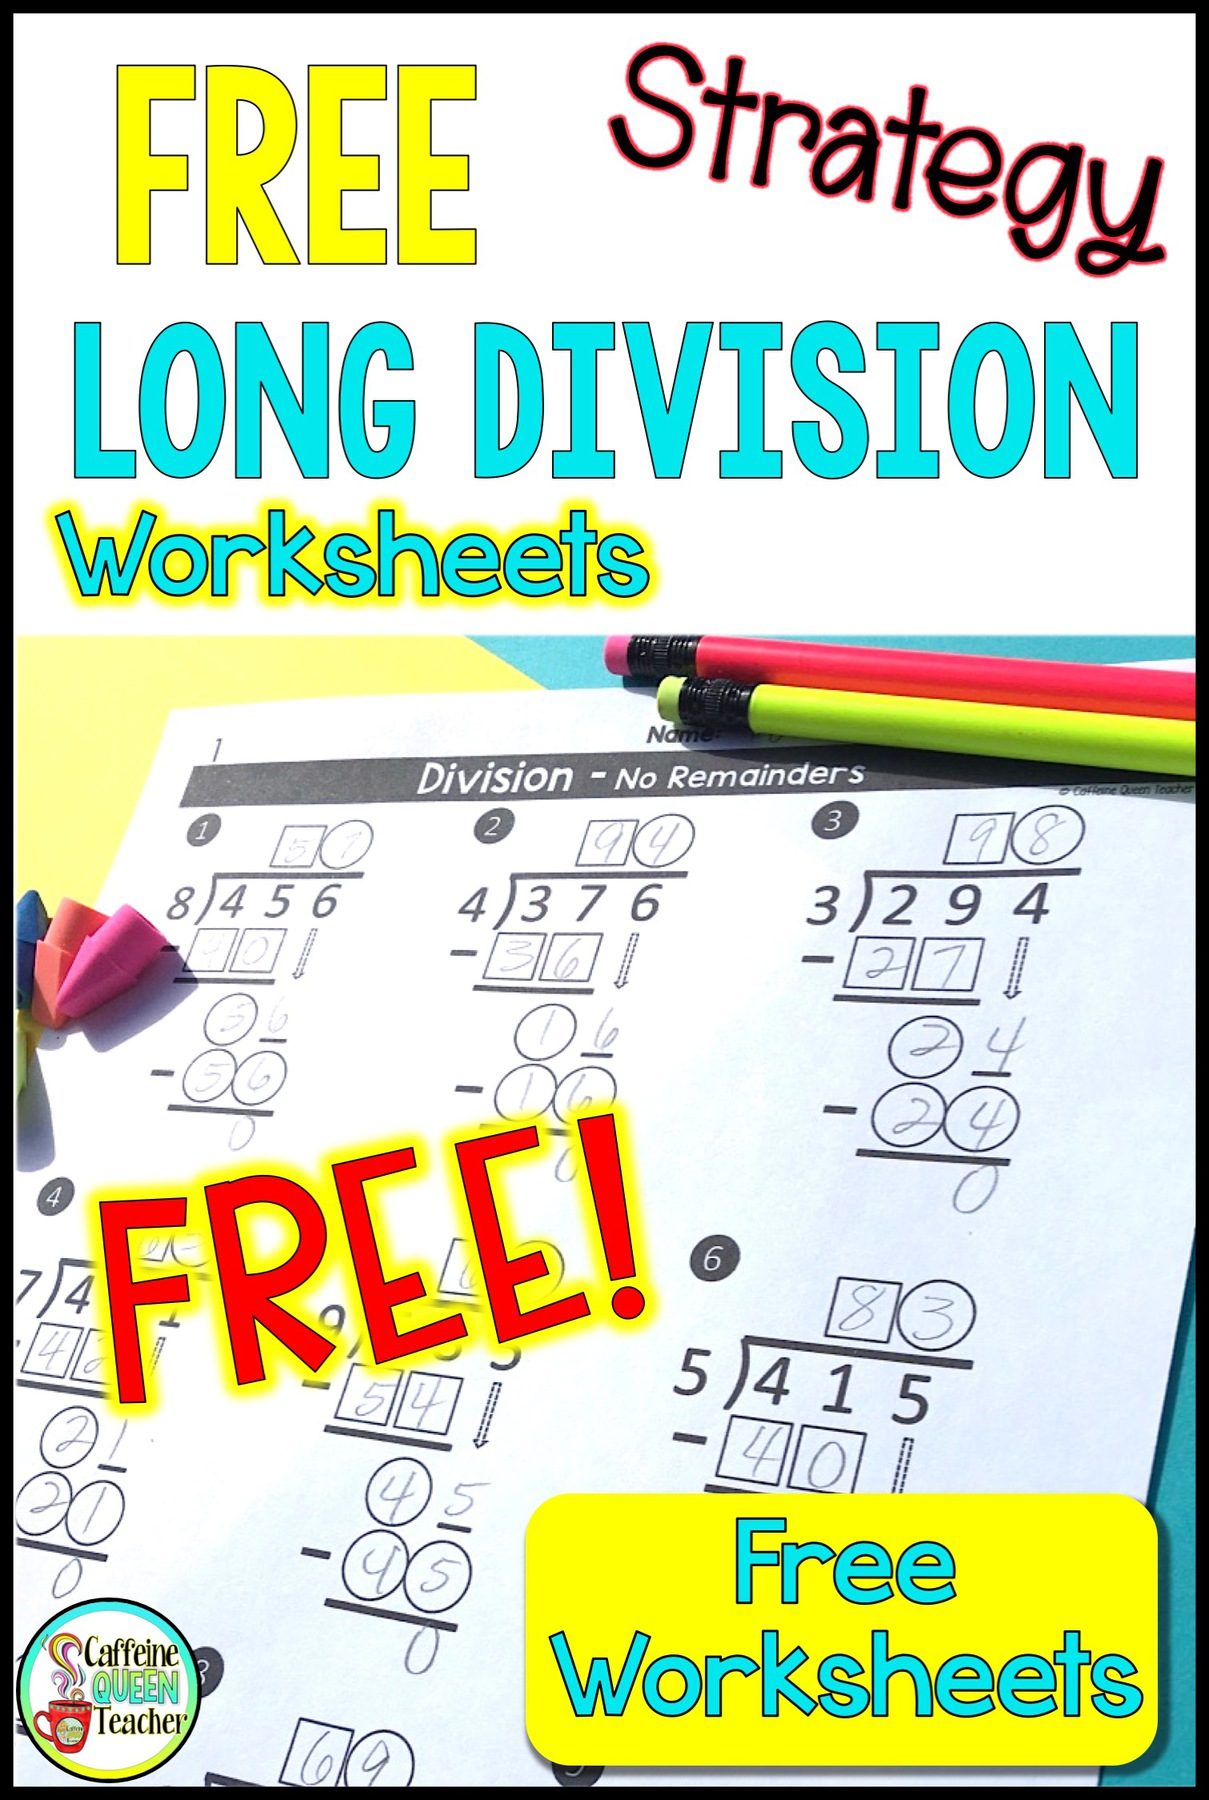 medium resolution of Differentiated Long Division Worksheets for FREE - Caffeine Queen Teacher